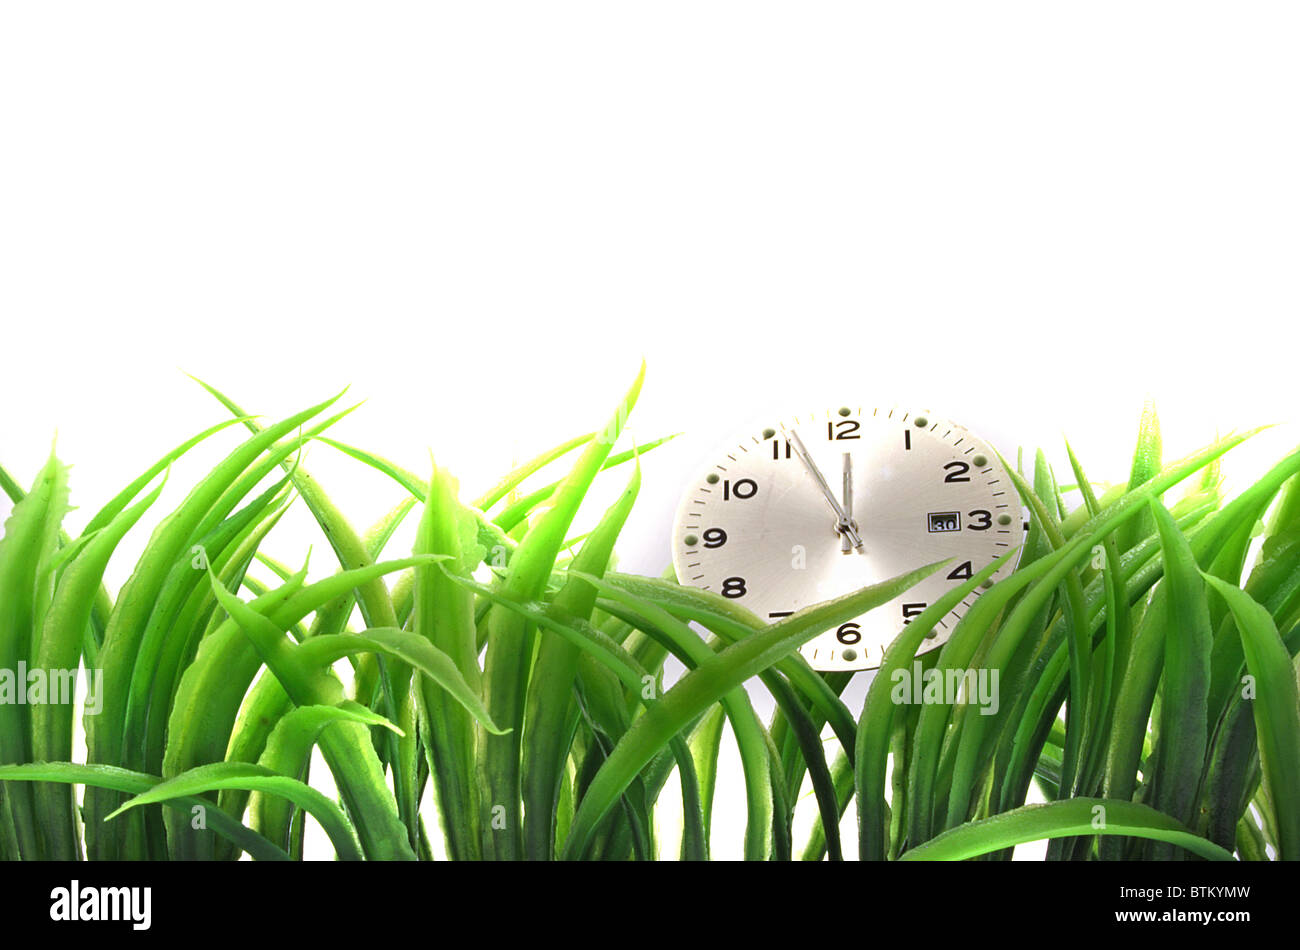 A clock lying in some blades of grass. All isolated on white background. - Stock Image